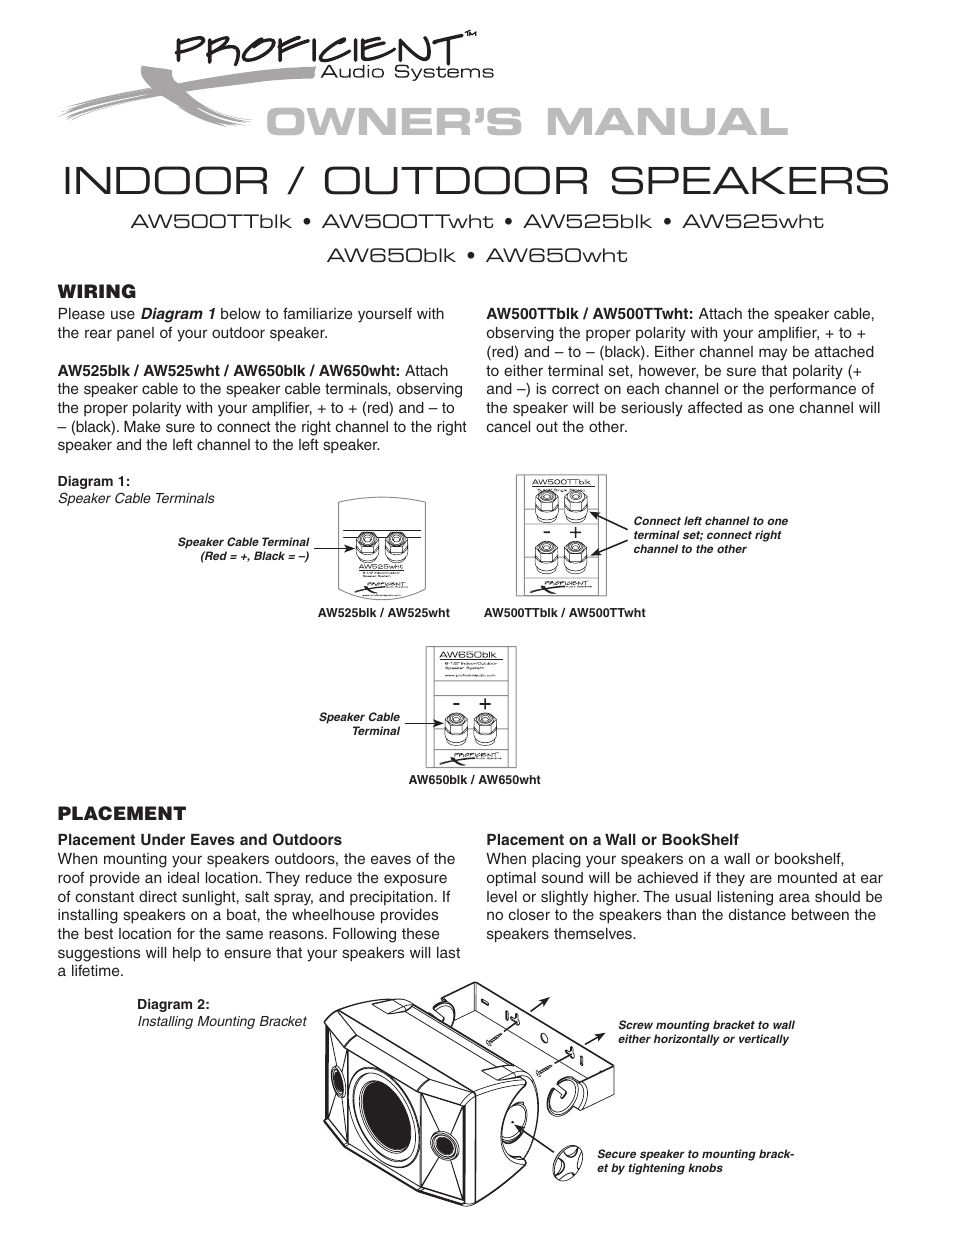 Proficient Audio Systems AW650blk User Manual | 2 pages | Also for:  Proficient AW525BLK, Proficient AW525WHT, Proficient AW500TTBLK, AW650wht,  Proficient ...